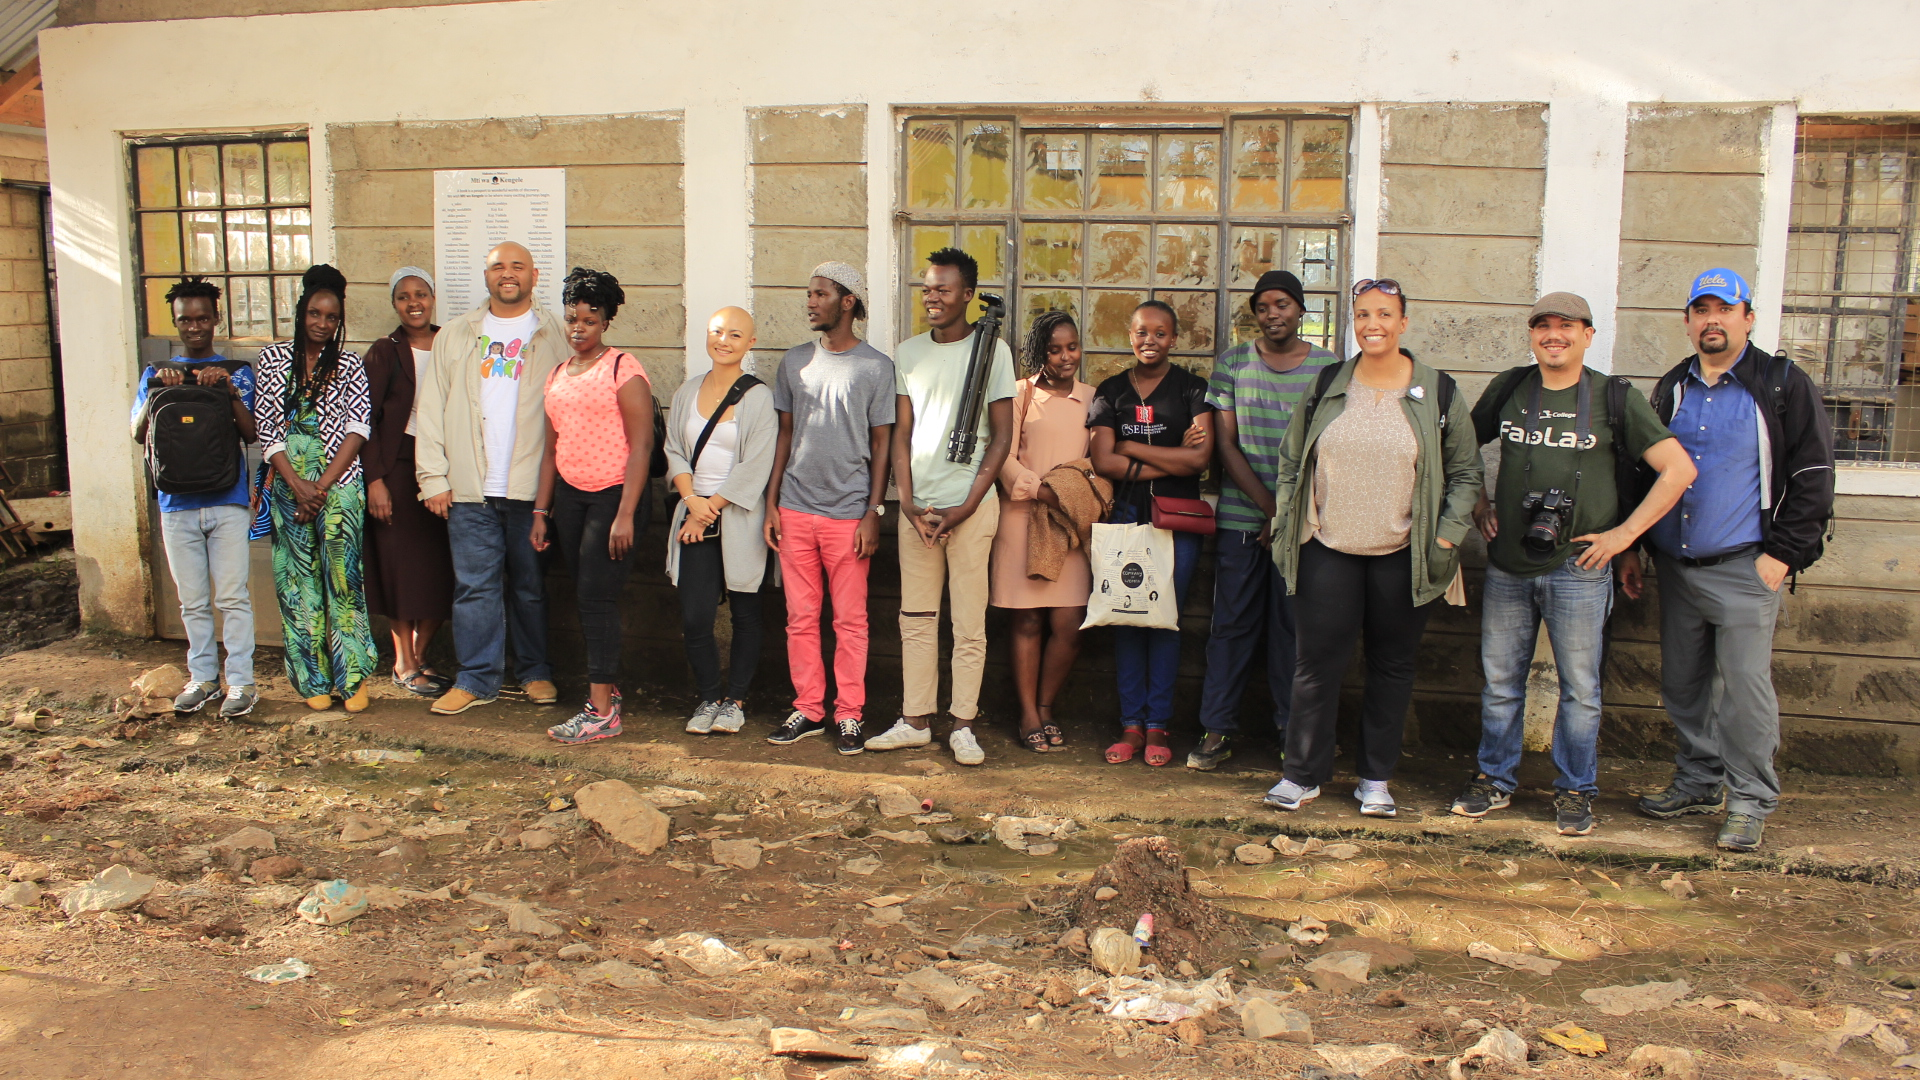 Second Global Learning Exchange participants on a field visit to Mukuru informal settlement, Nairobi.